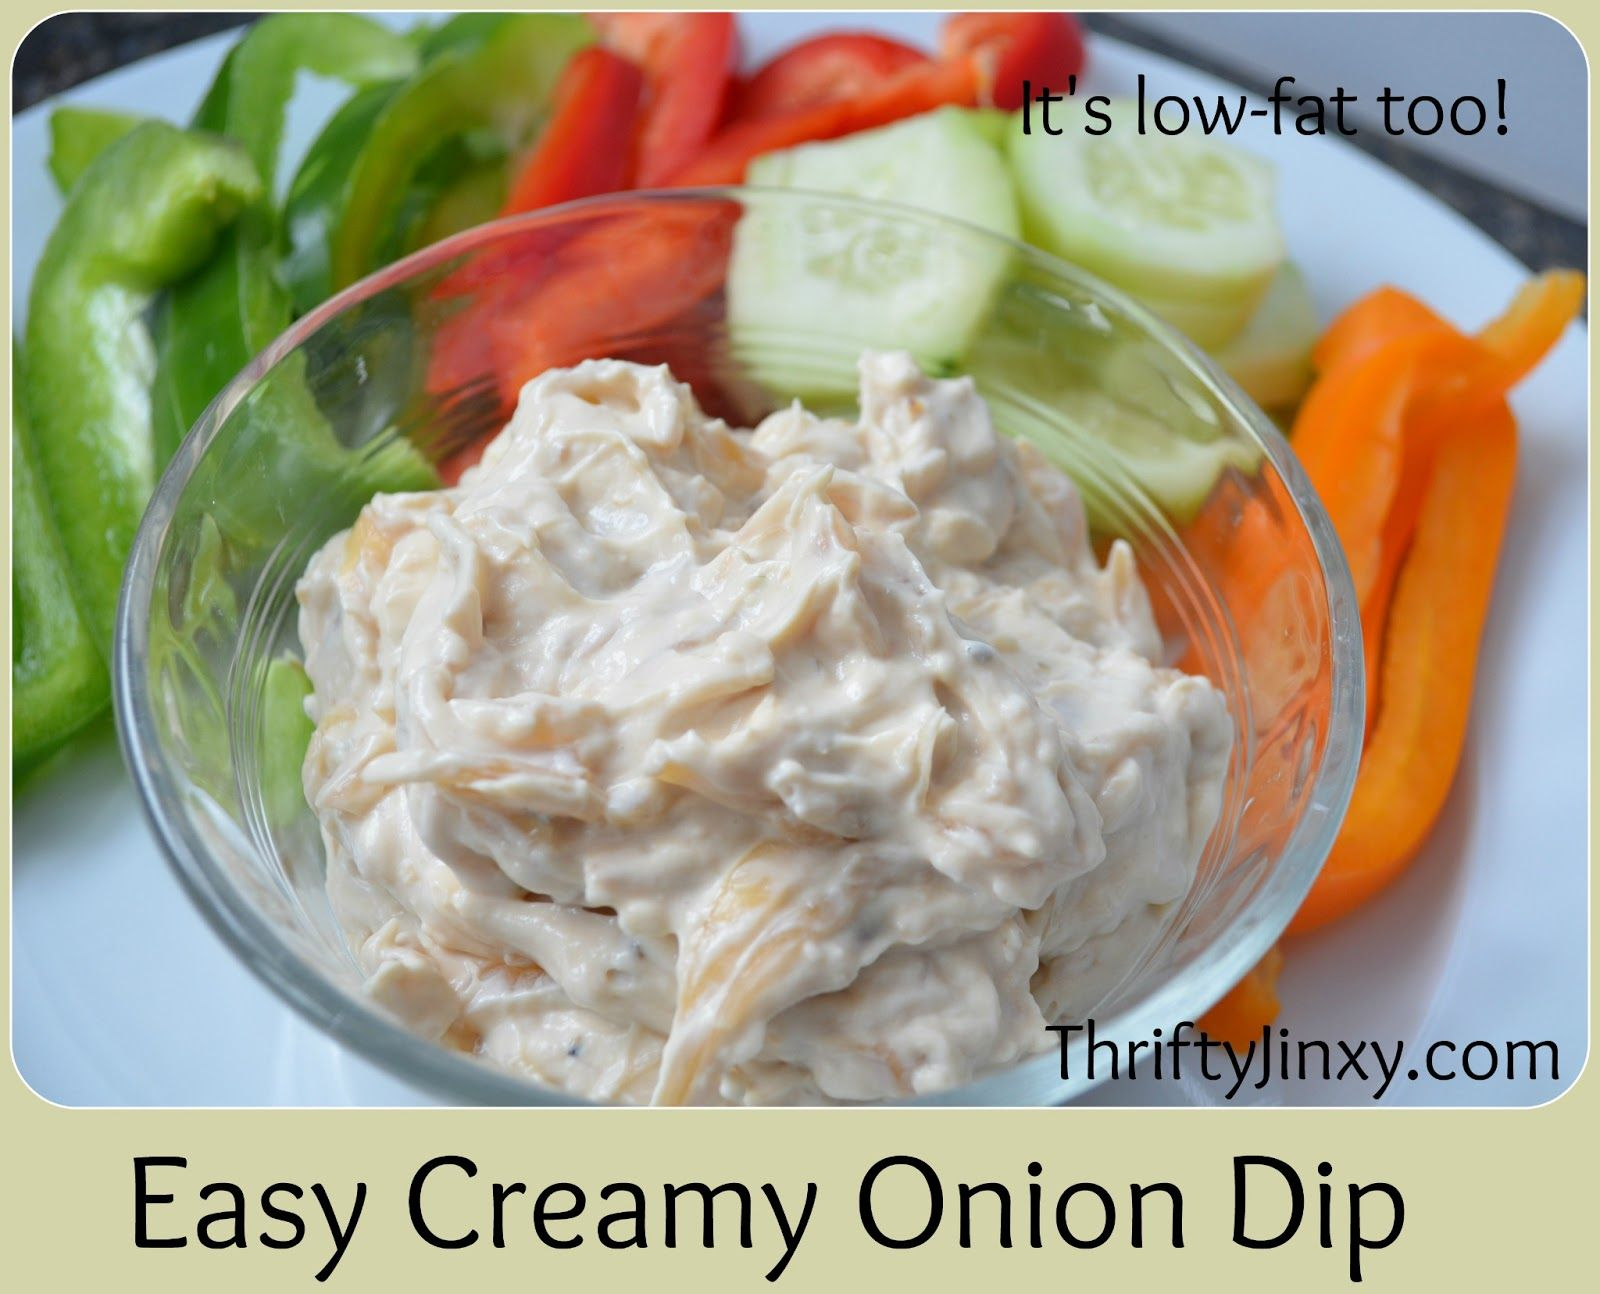 Thrifty Jinxy: Easy Creamy Onion Dip Recipe - It's Low-Fat Too!